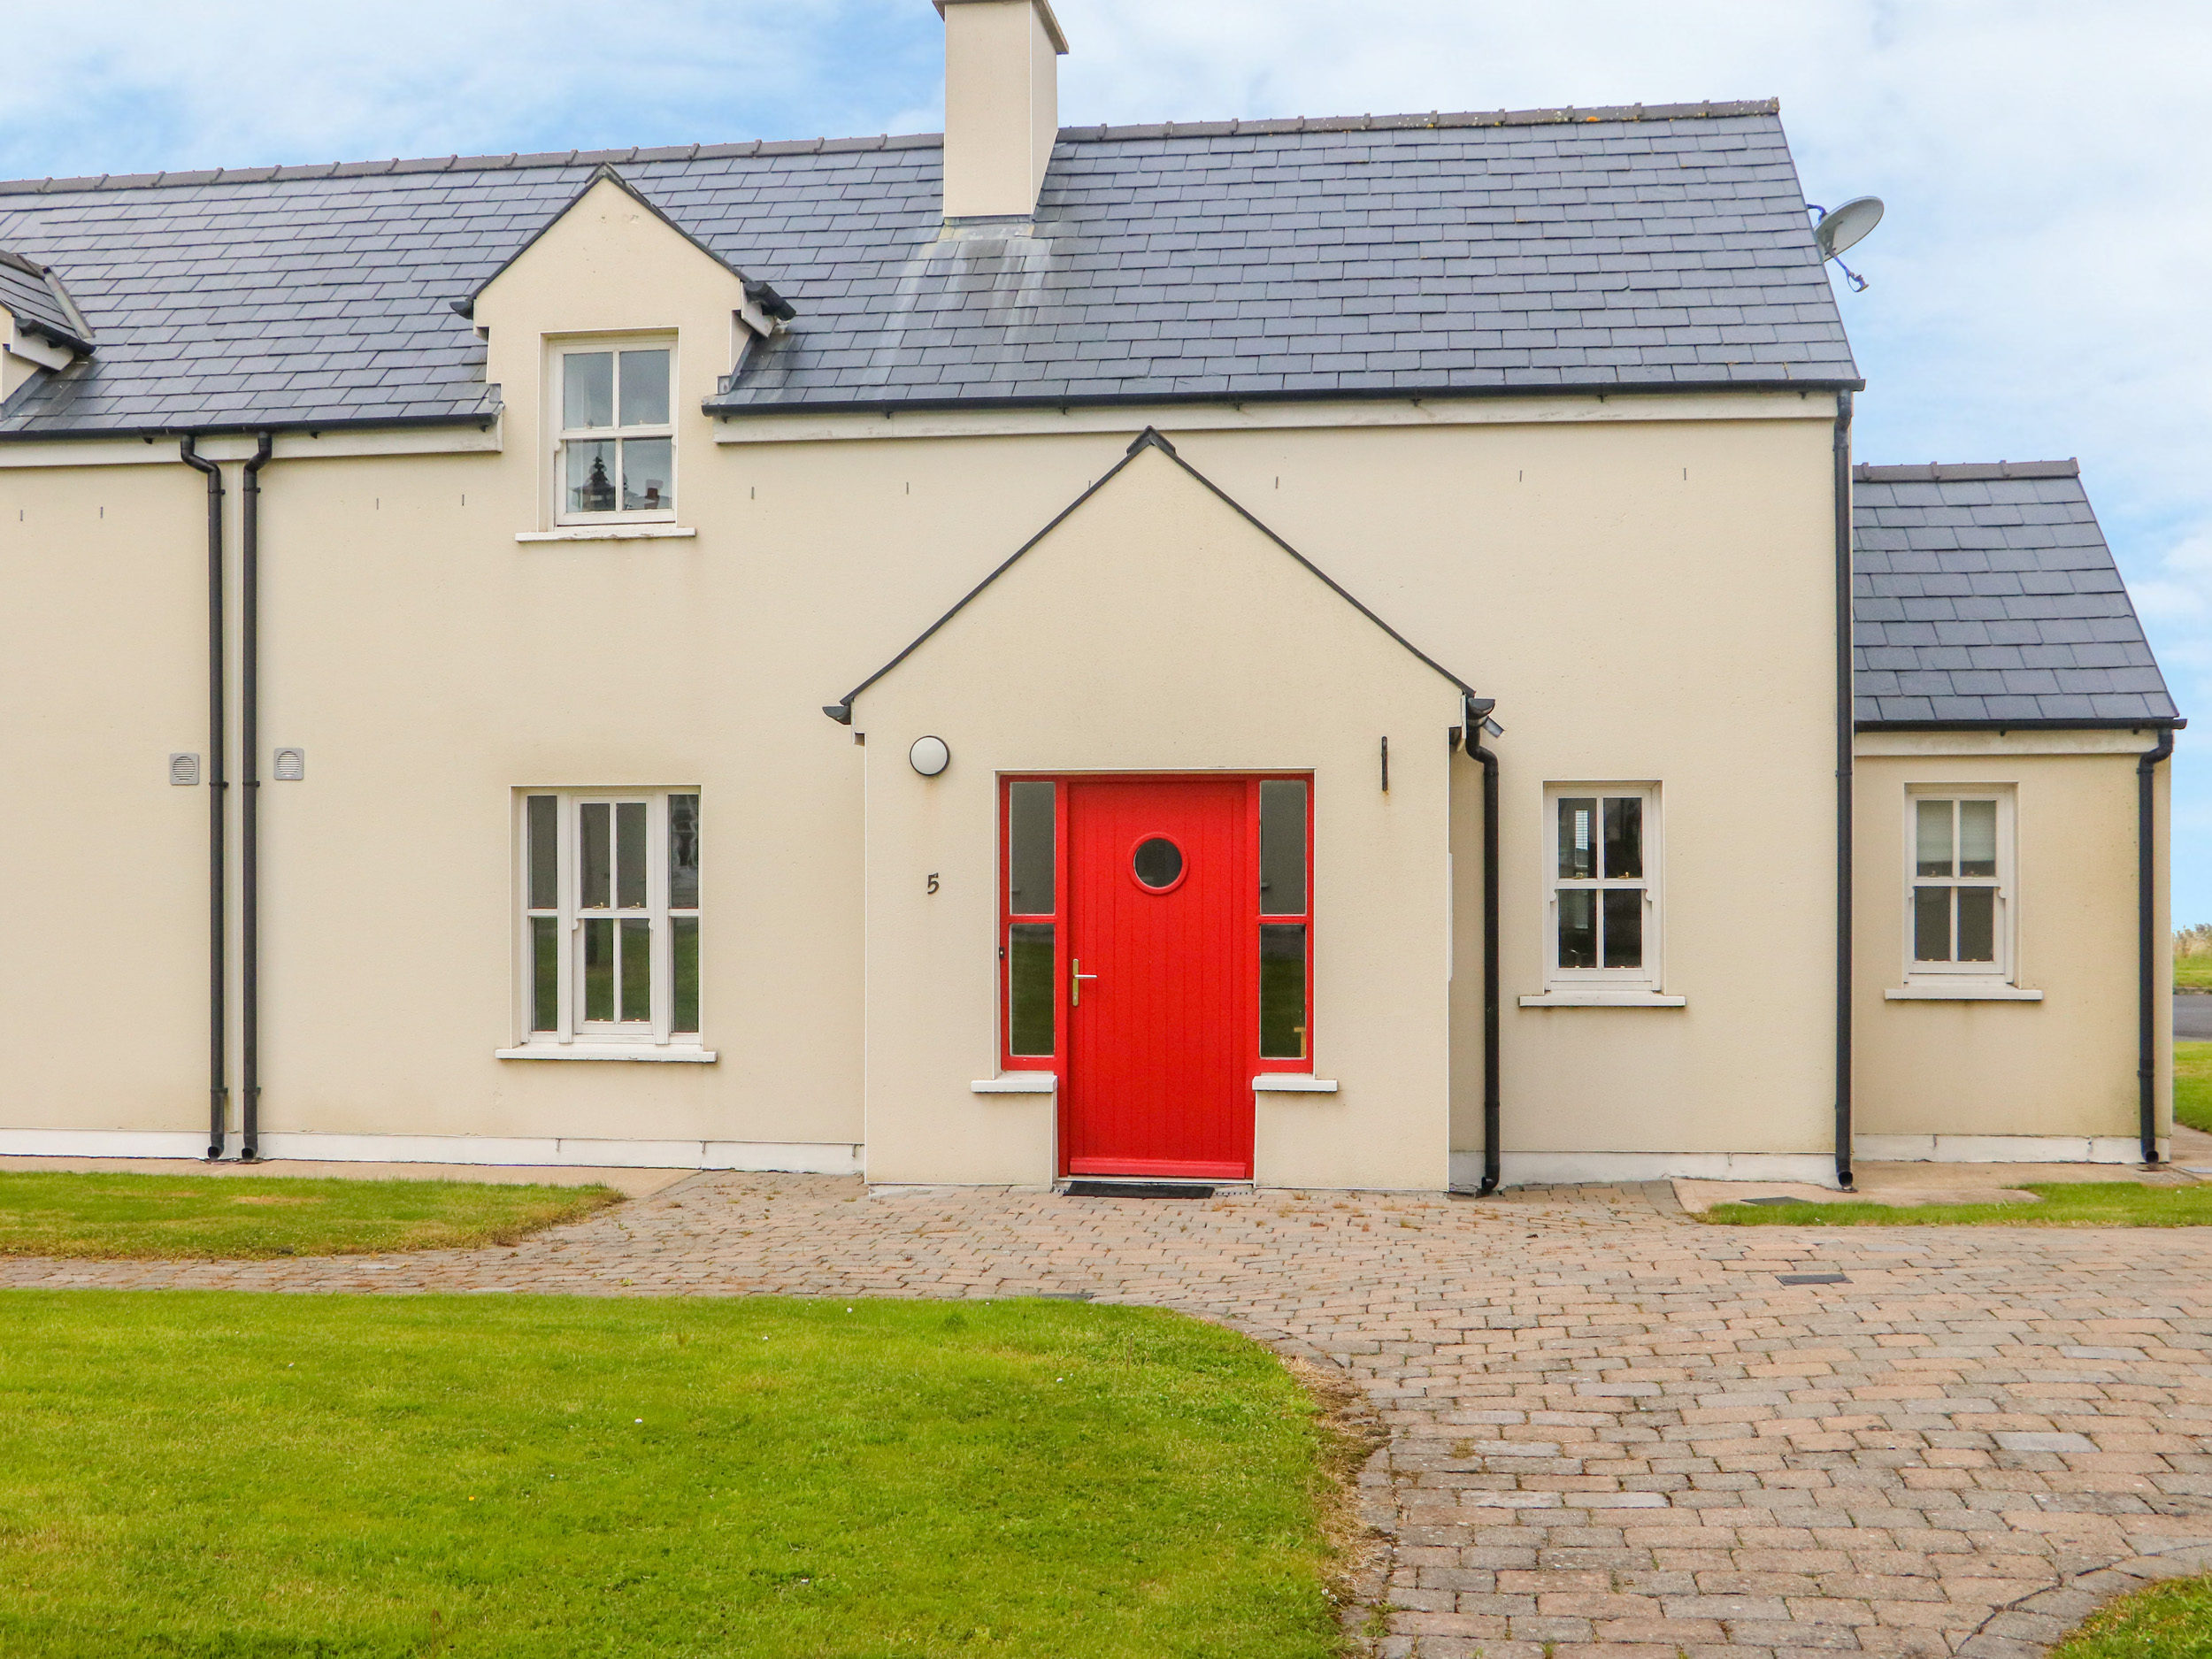 No. 5 An Seanachai, County Waterford